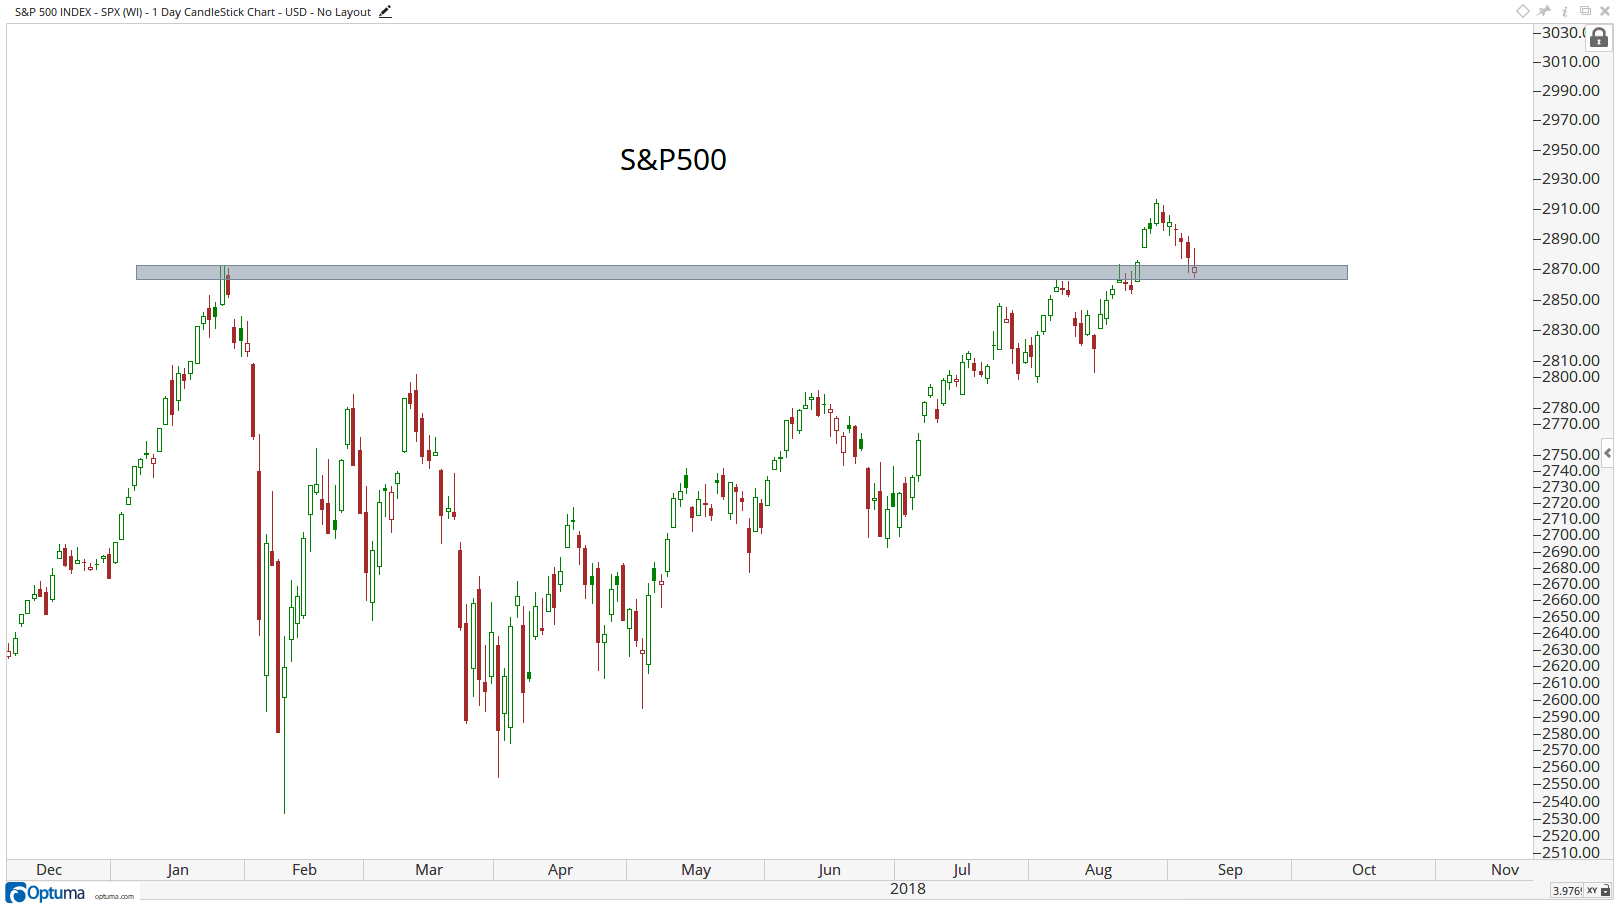 Technical chart showing the performance of the S&P 500 index